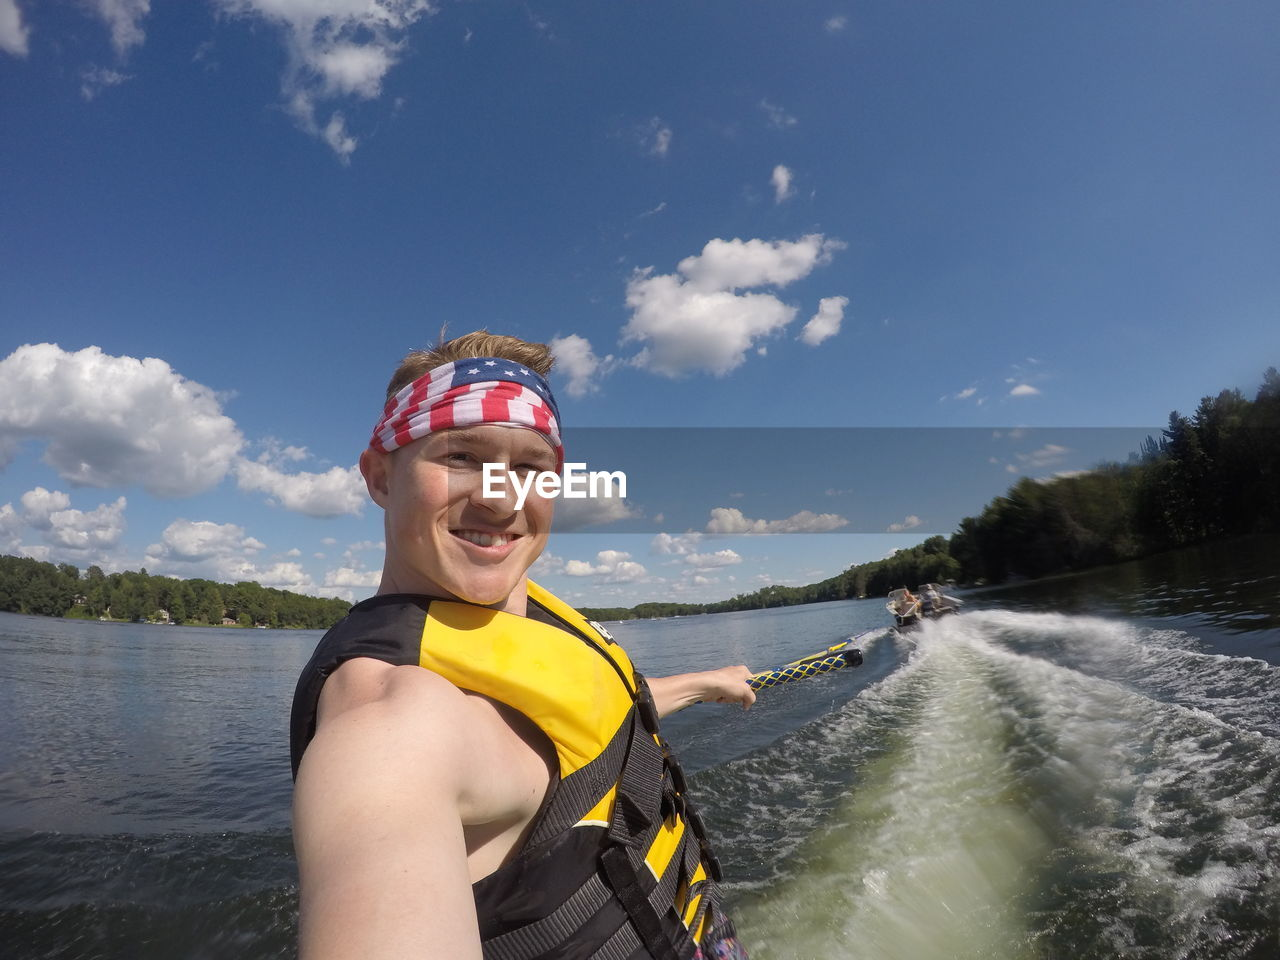 Portrait of smiling young man wakeboarding on lake against sky